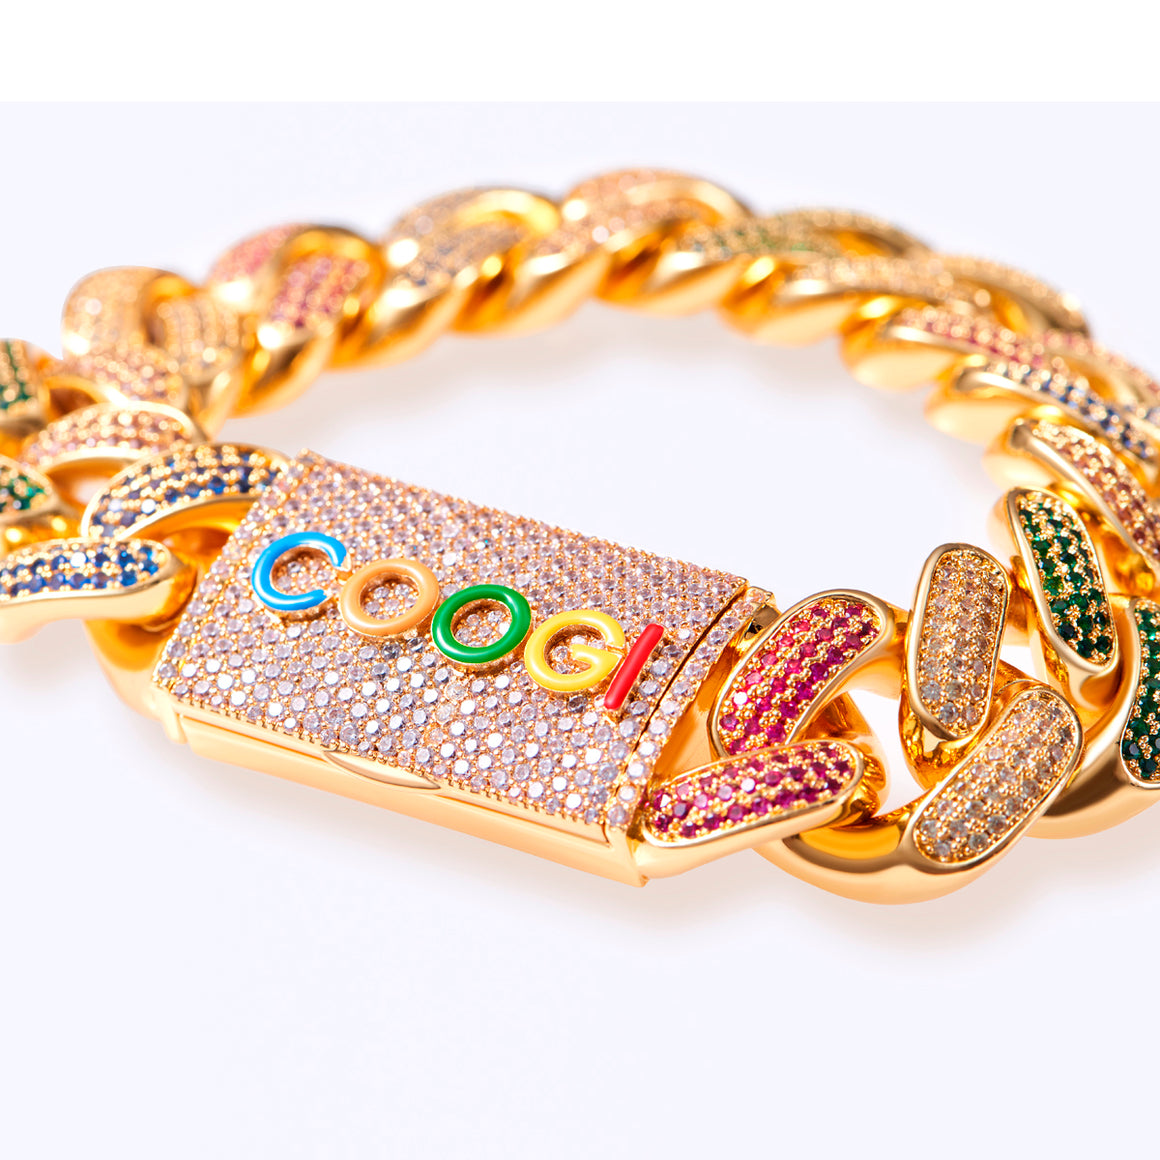 COOGI X Aporro Beating Cuban Link Bracelet, Ltd Ed - Heavy - Yellow Gold